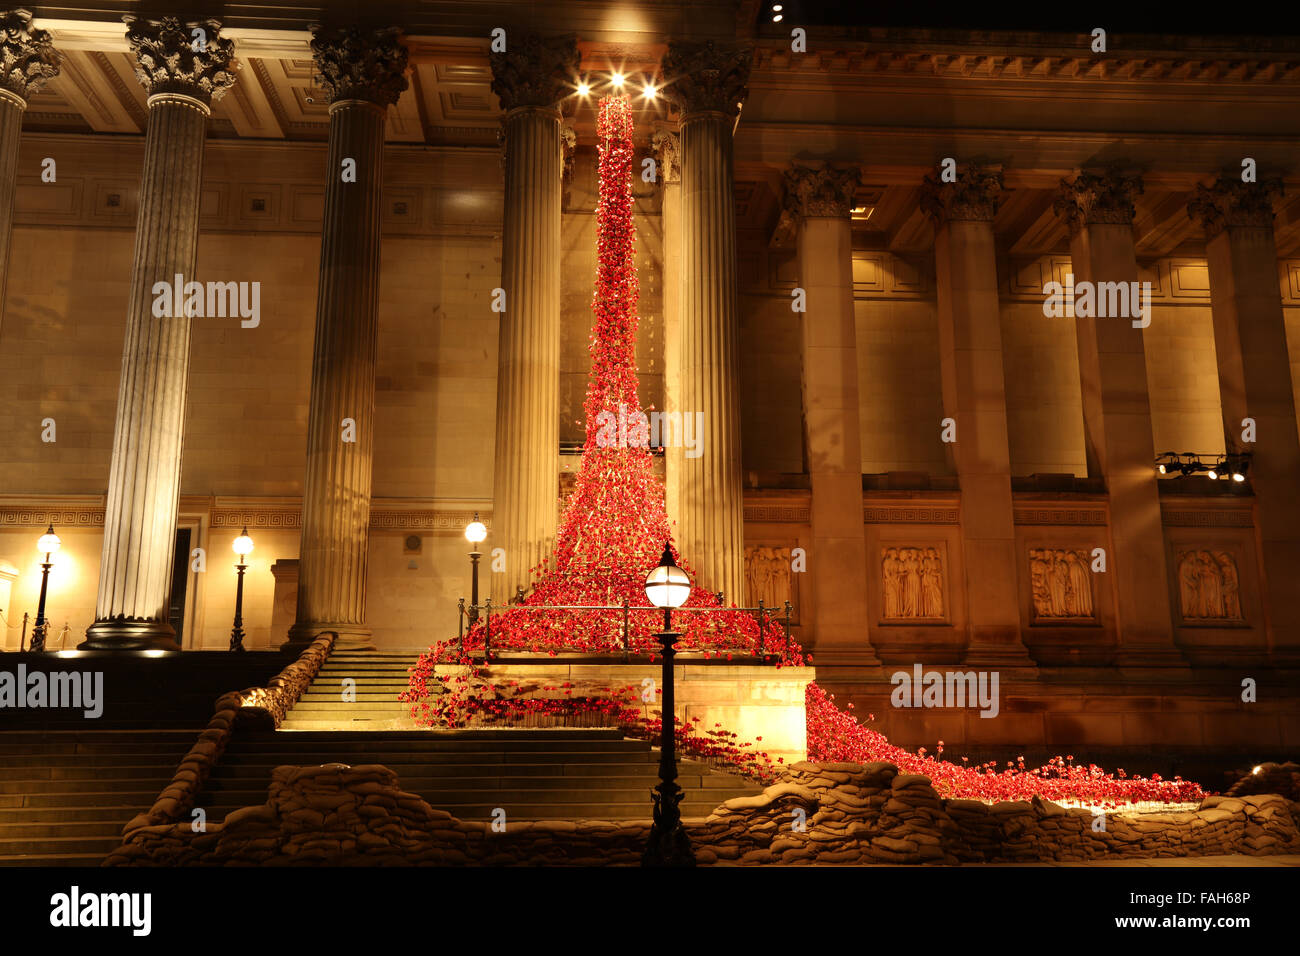 The Weeping Window, St George's Hall, Liverpool - Stock Image